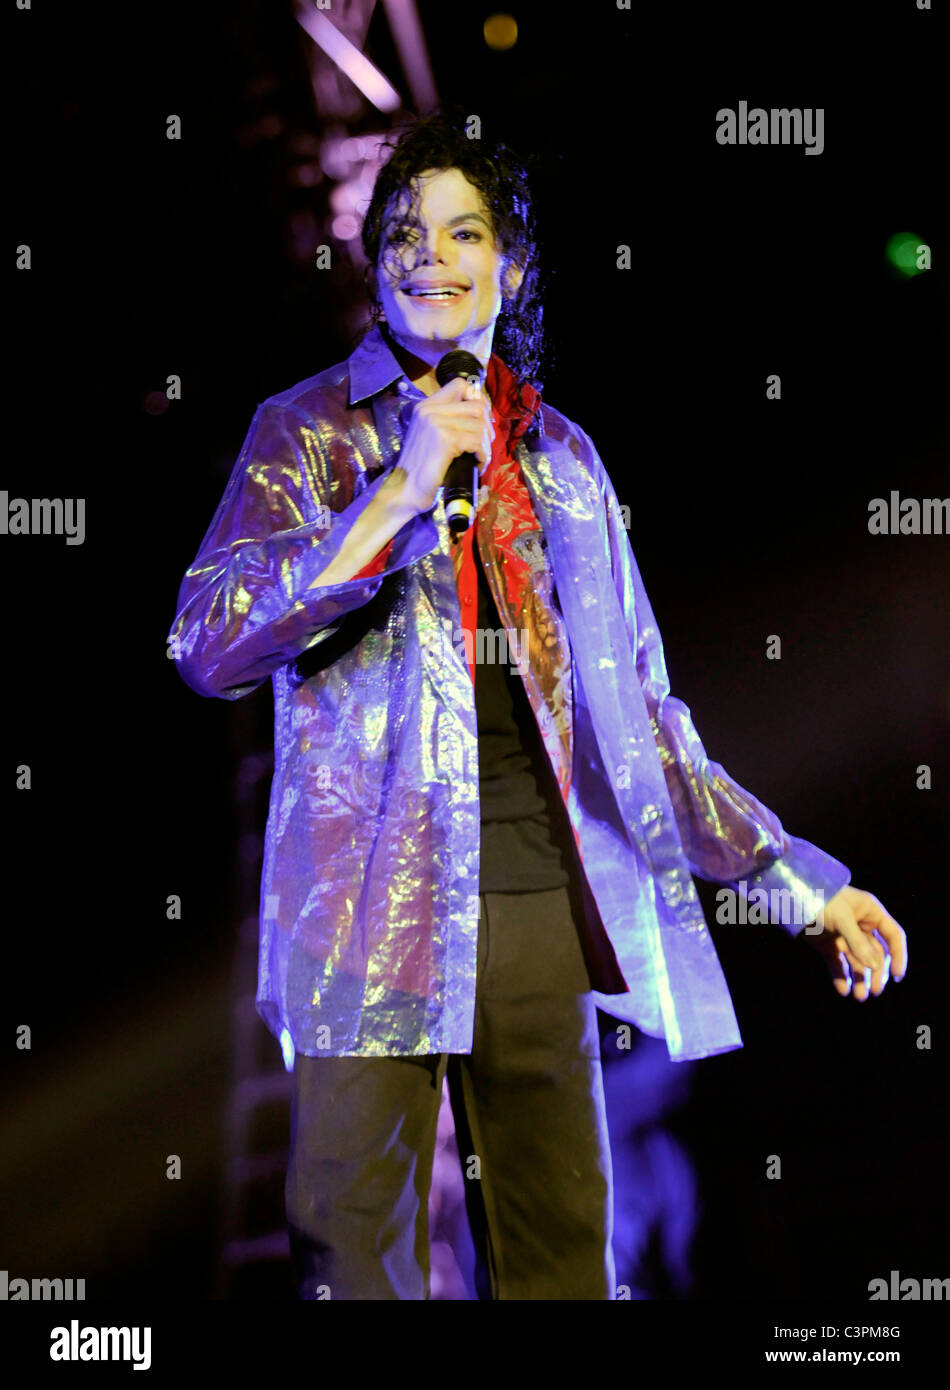 Michael Jackson This Is It Michael Jackson S This Is It 2009 Stock Photo Alamy